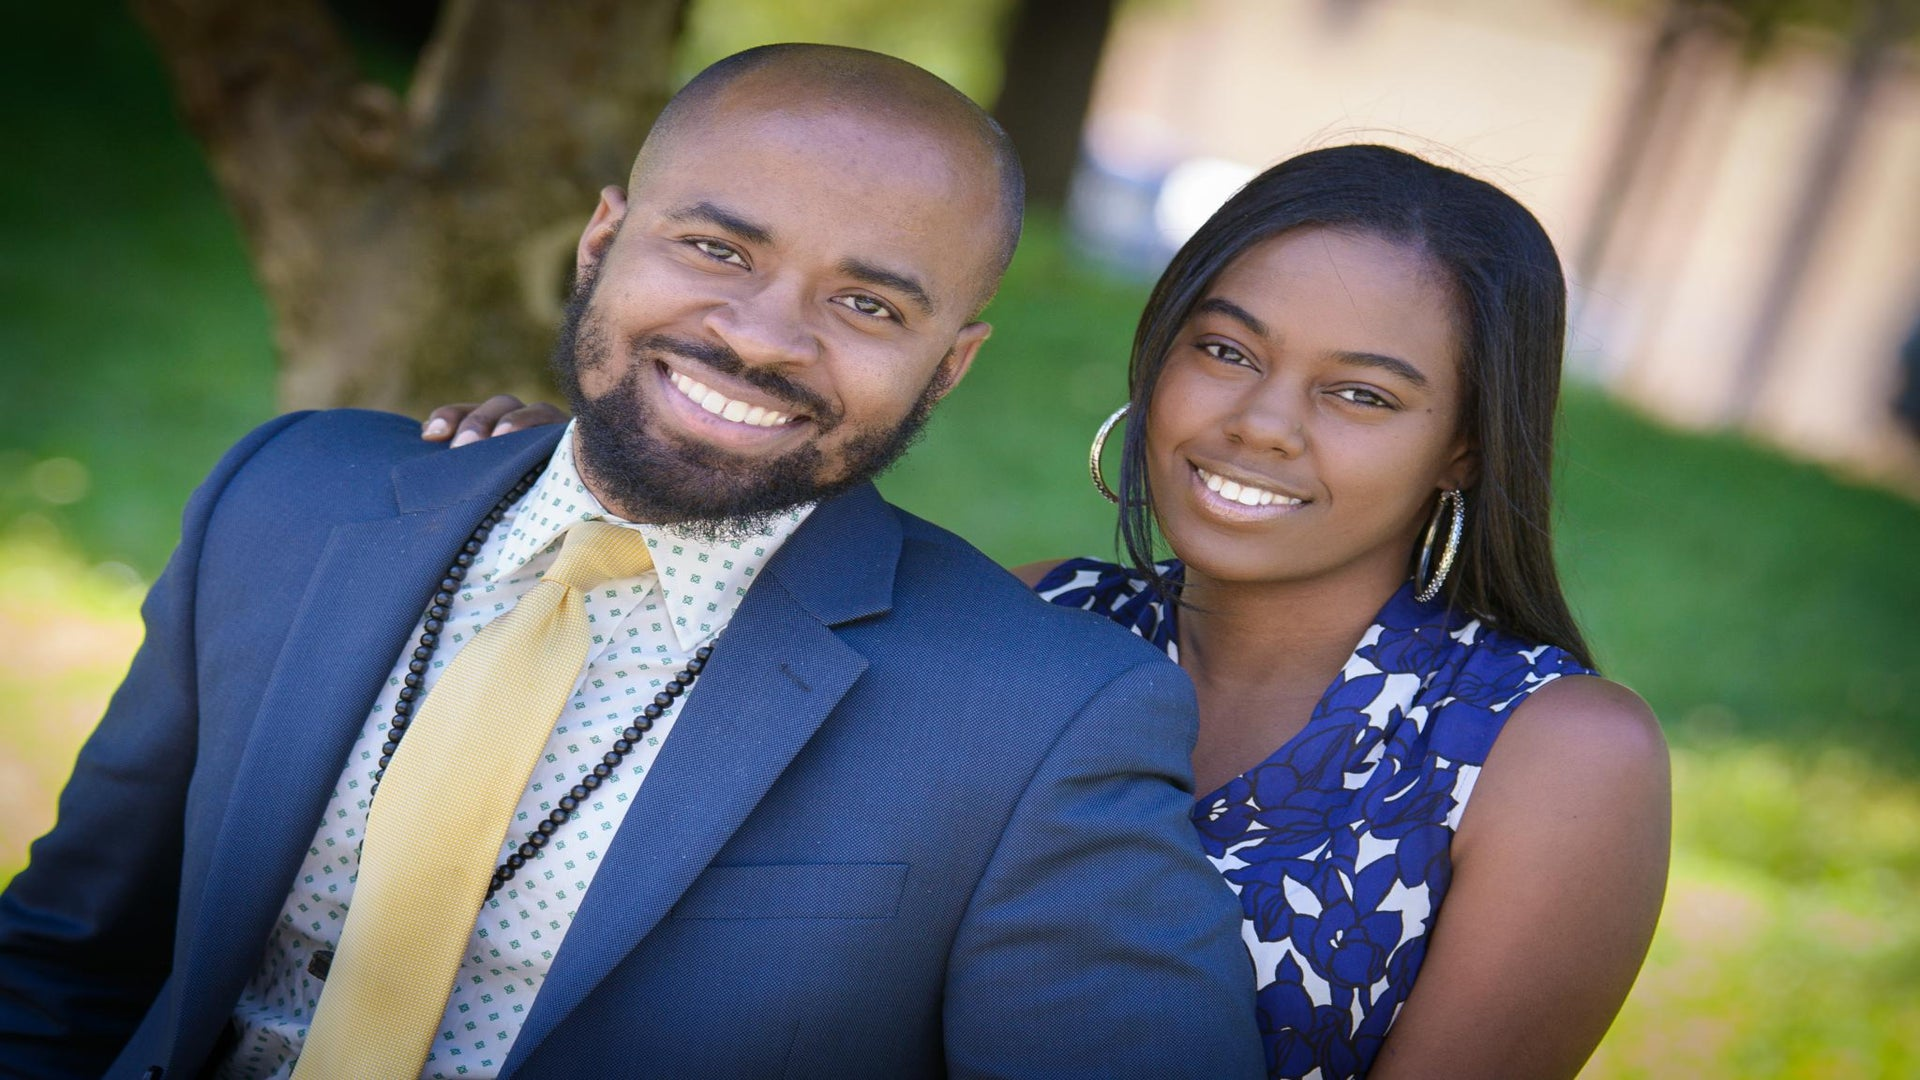 Young, Married and Ministering: A Couple On A Mission to Spread Love